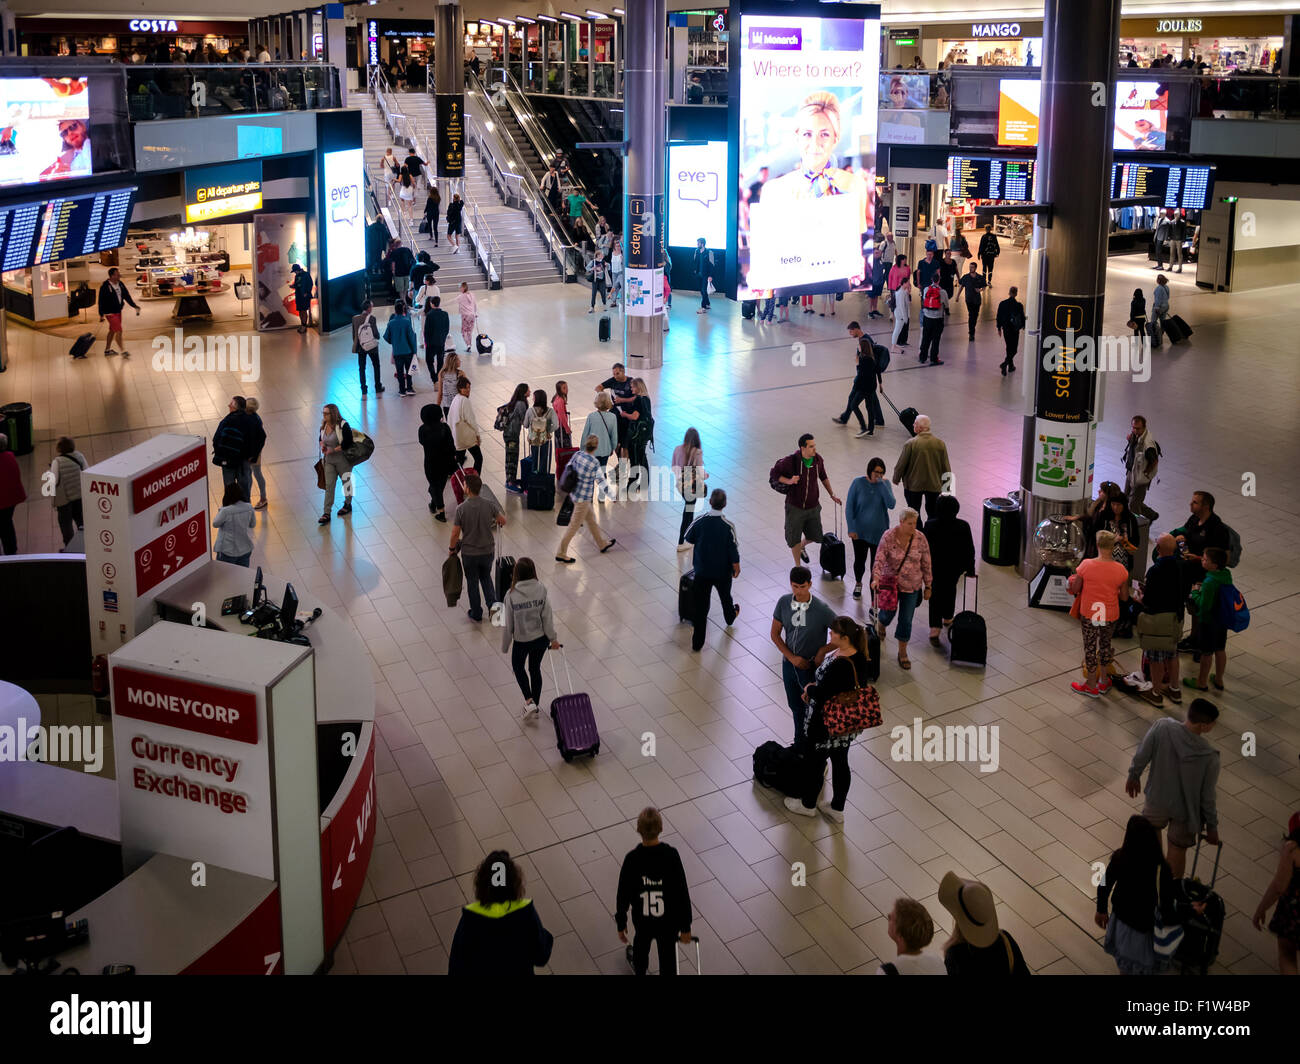 The departure hall of Gatwick Airport, North Terminal, London, England - Stock Image